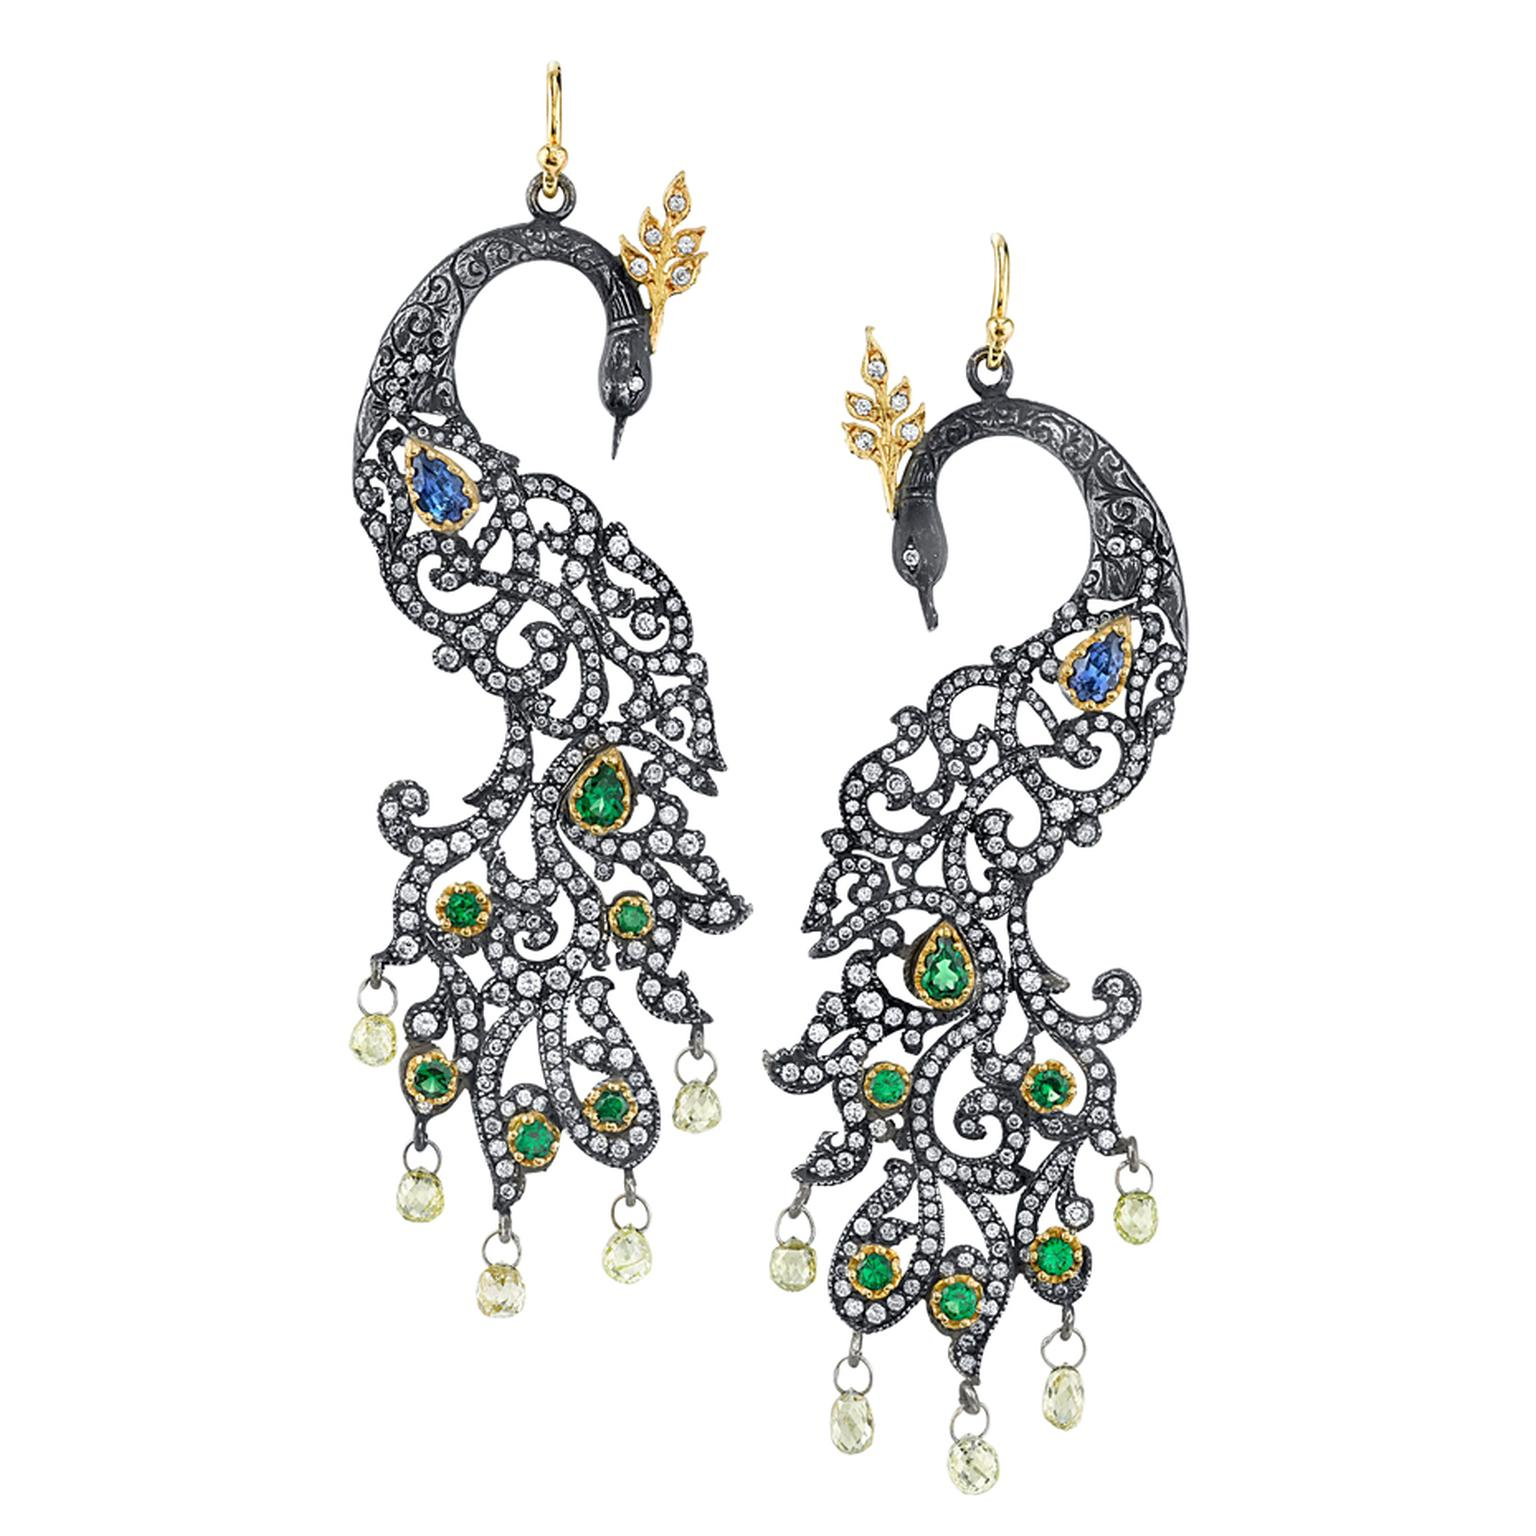 Arman Sarkisyan Peacock earrings with tanzanite, tsavorite, diamonds and oxidised silver